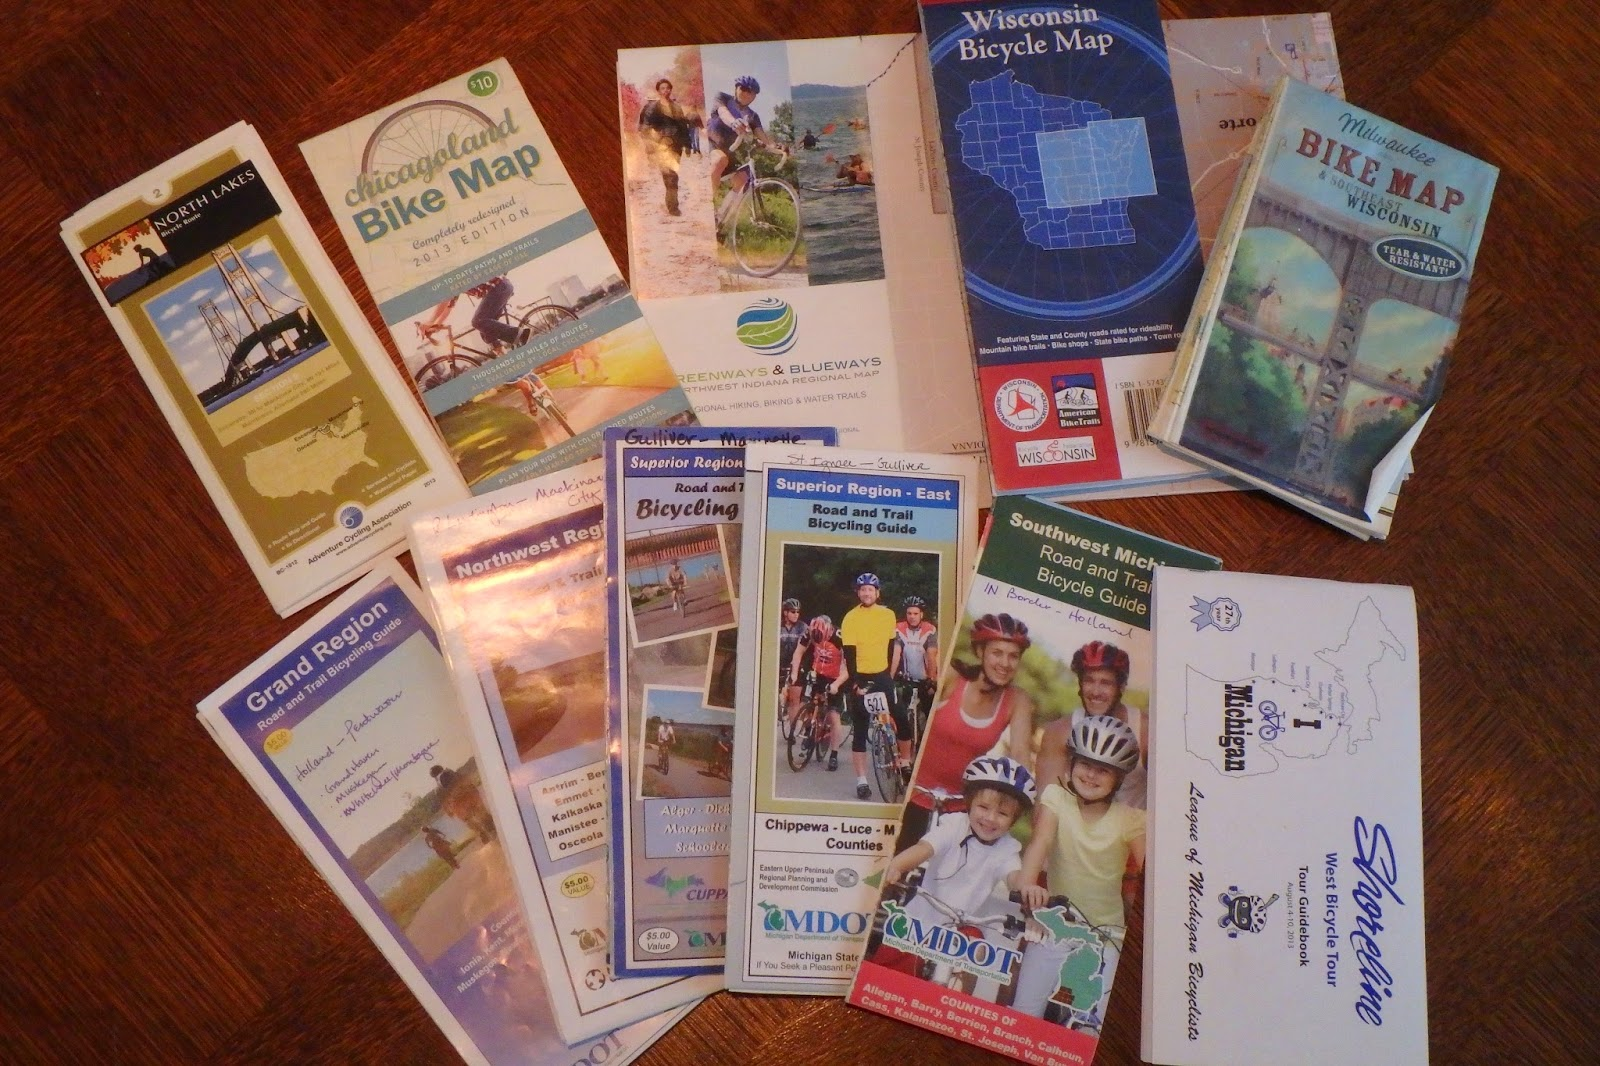 my collection of lake michigan bicycle maps